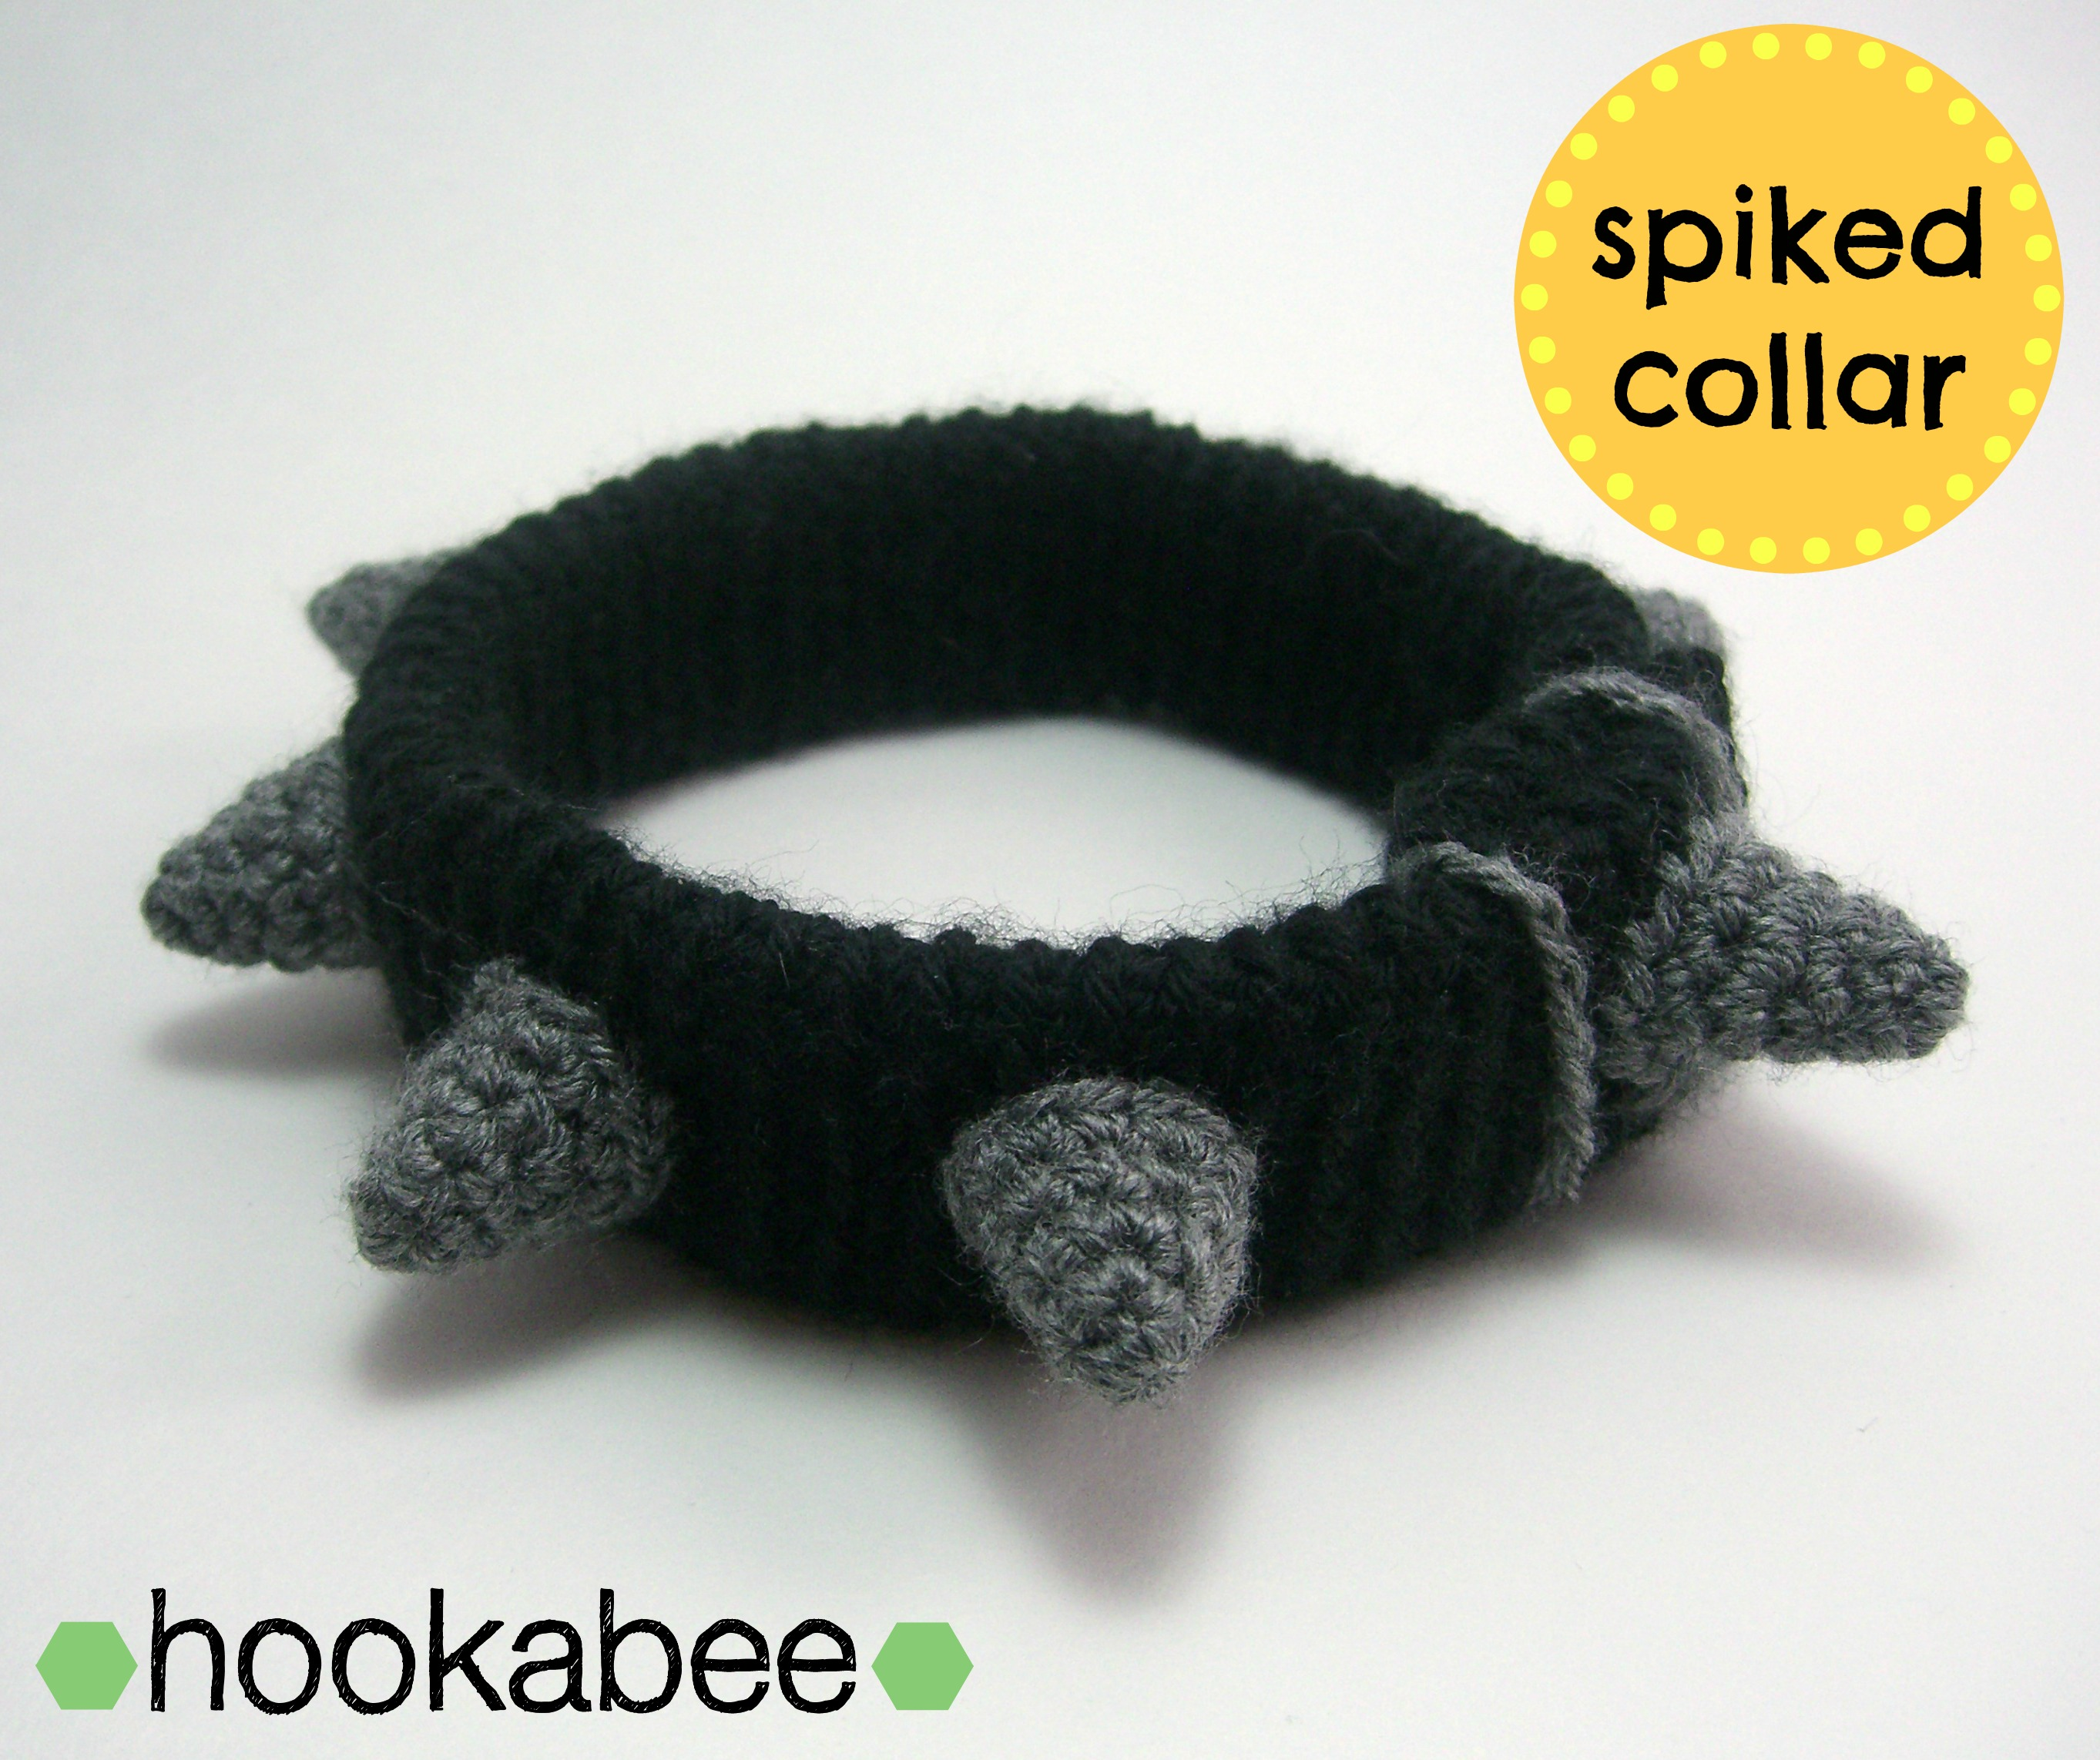 Monsters Spiked Dog Collar Hookabee